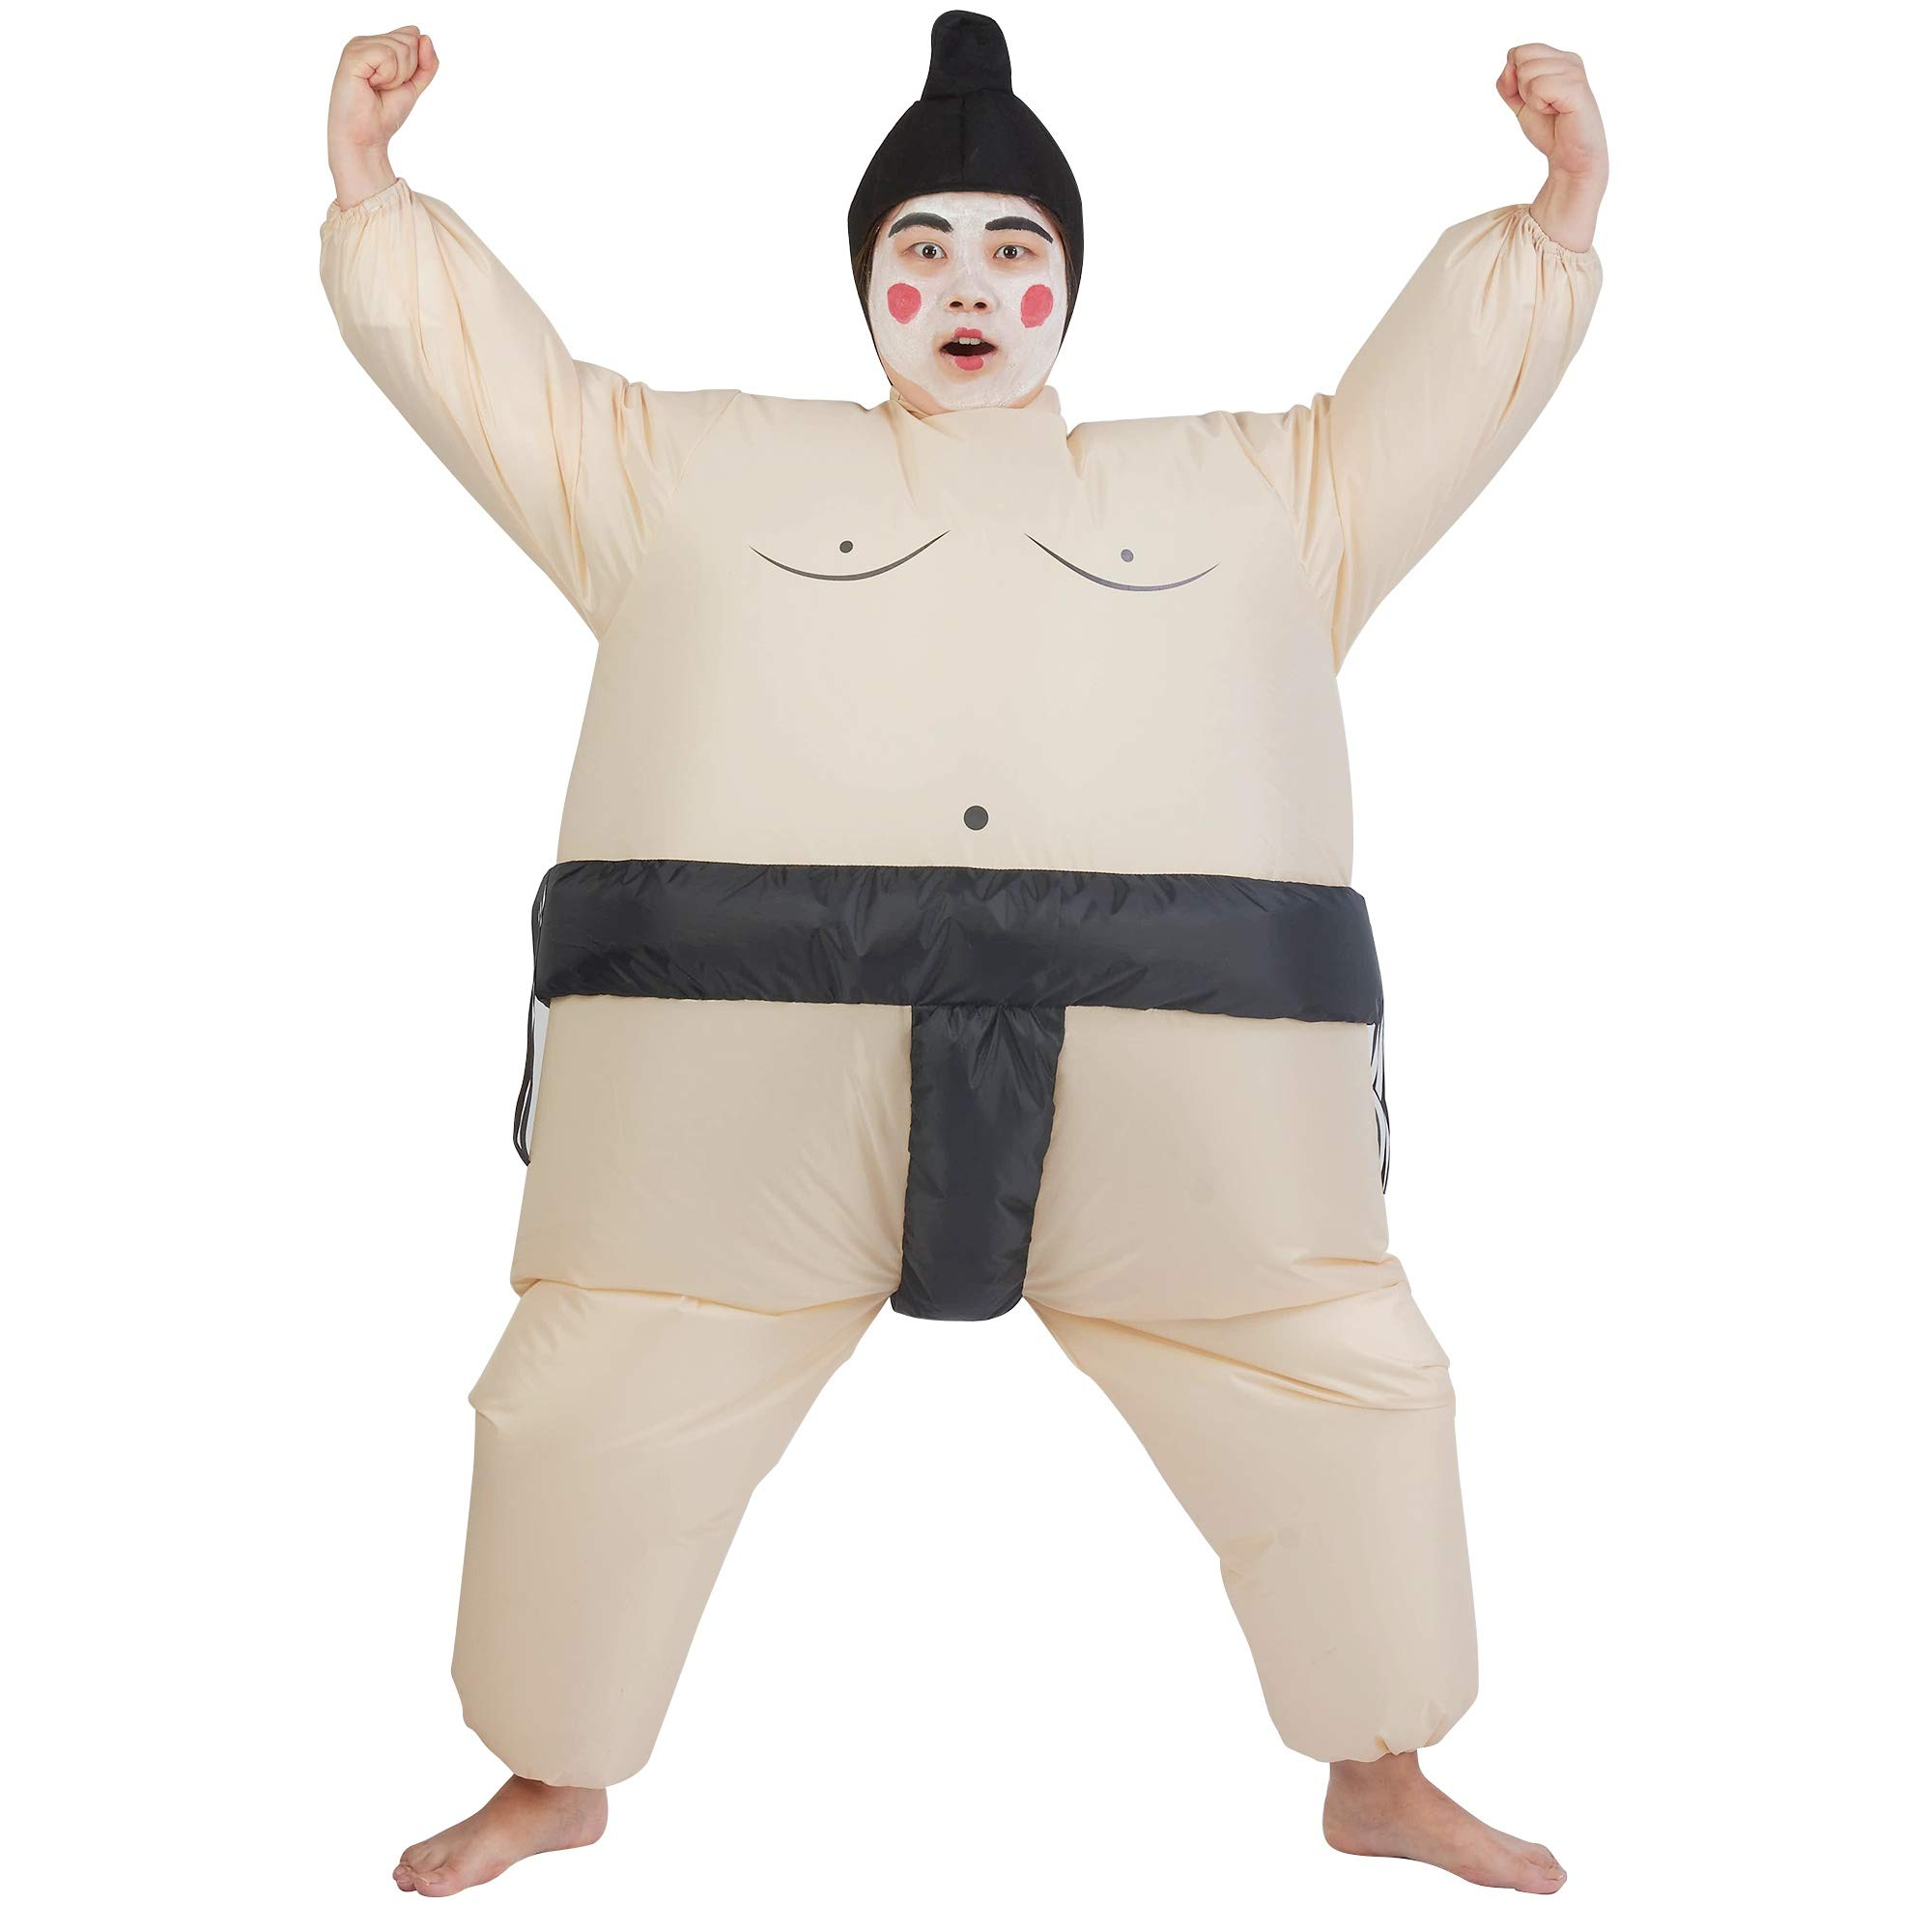 ATDAWN Inflatable Kids Sumo Wrestler Wrestling Suits, Inflatable Costumes, Halloween Costume, Blow Up Costume, One Size Fits Most by ATDAWN